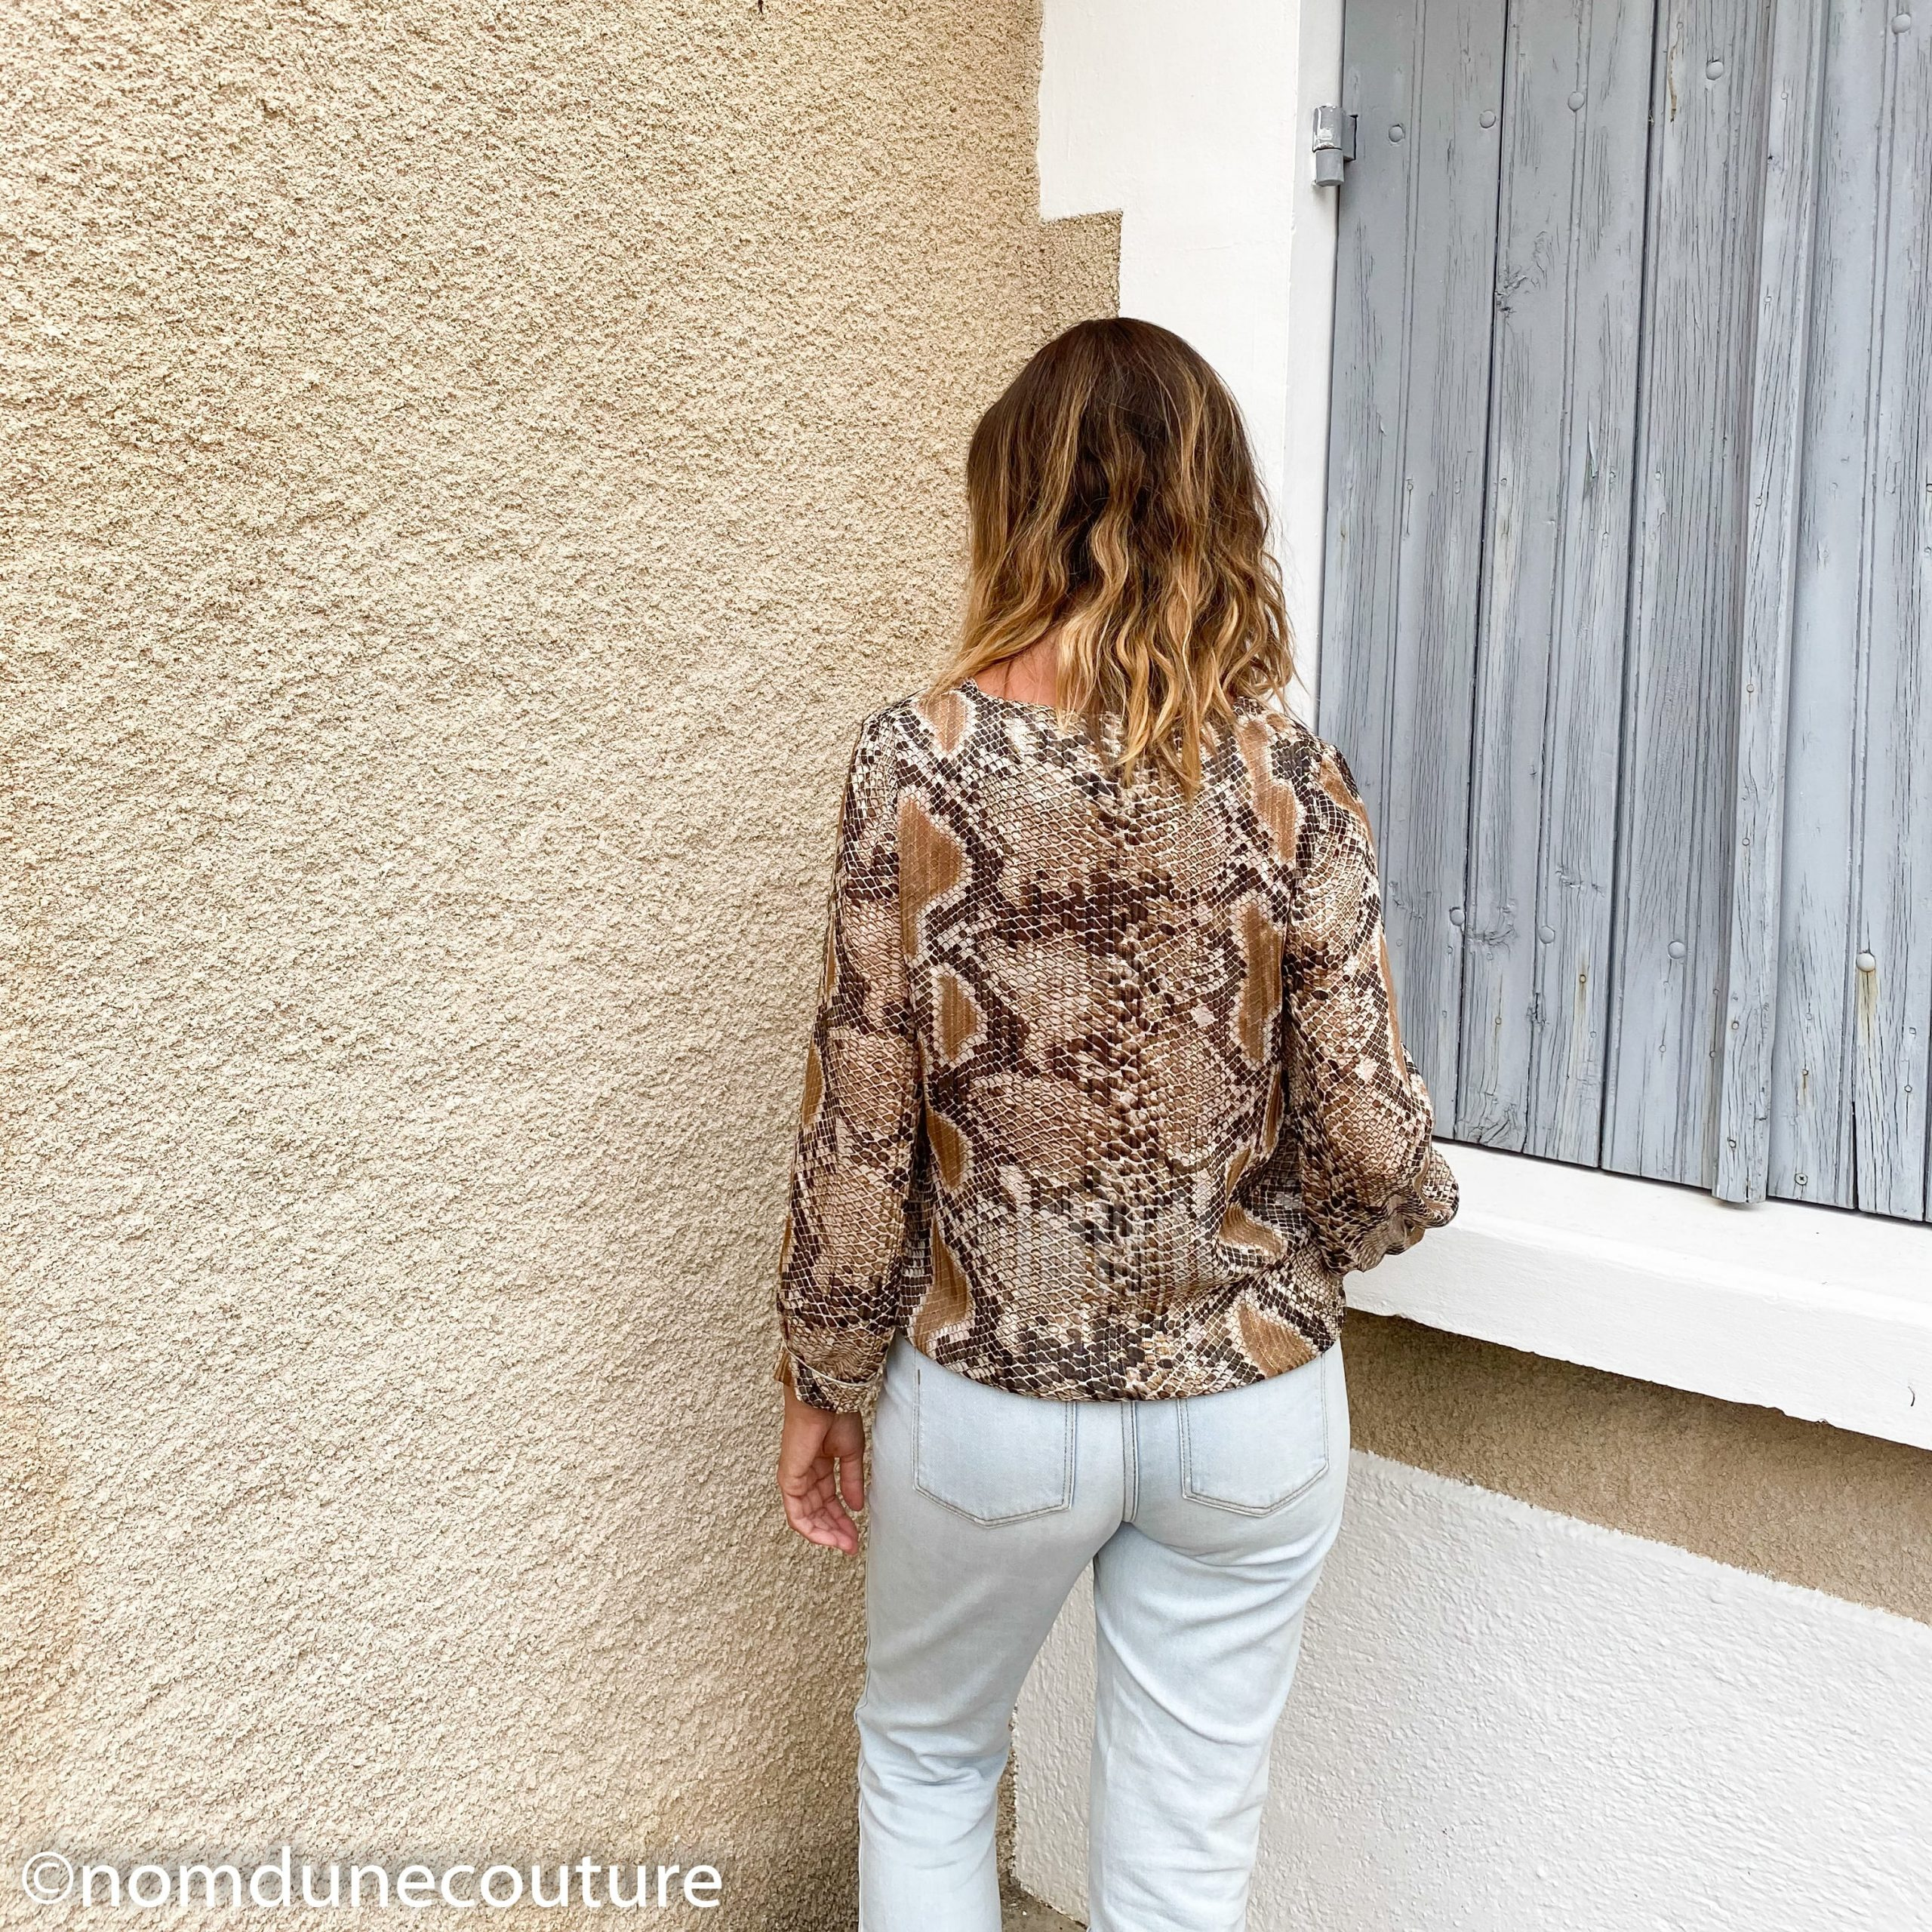 dos le blouse MS 10.19 Mouna sew